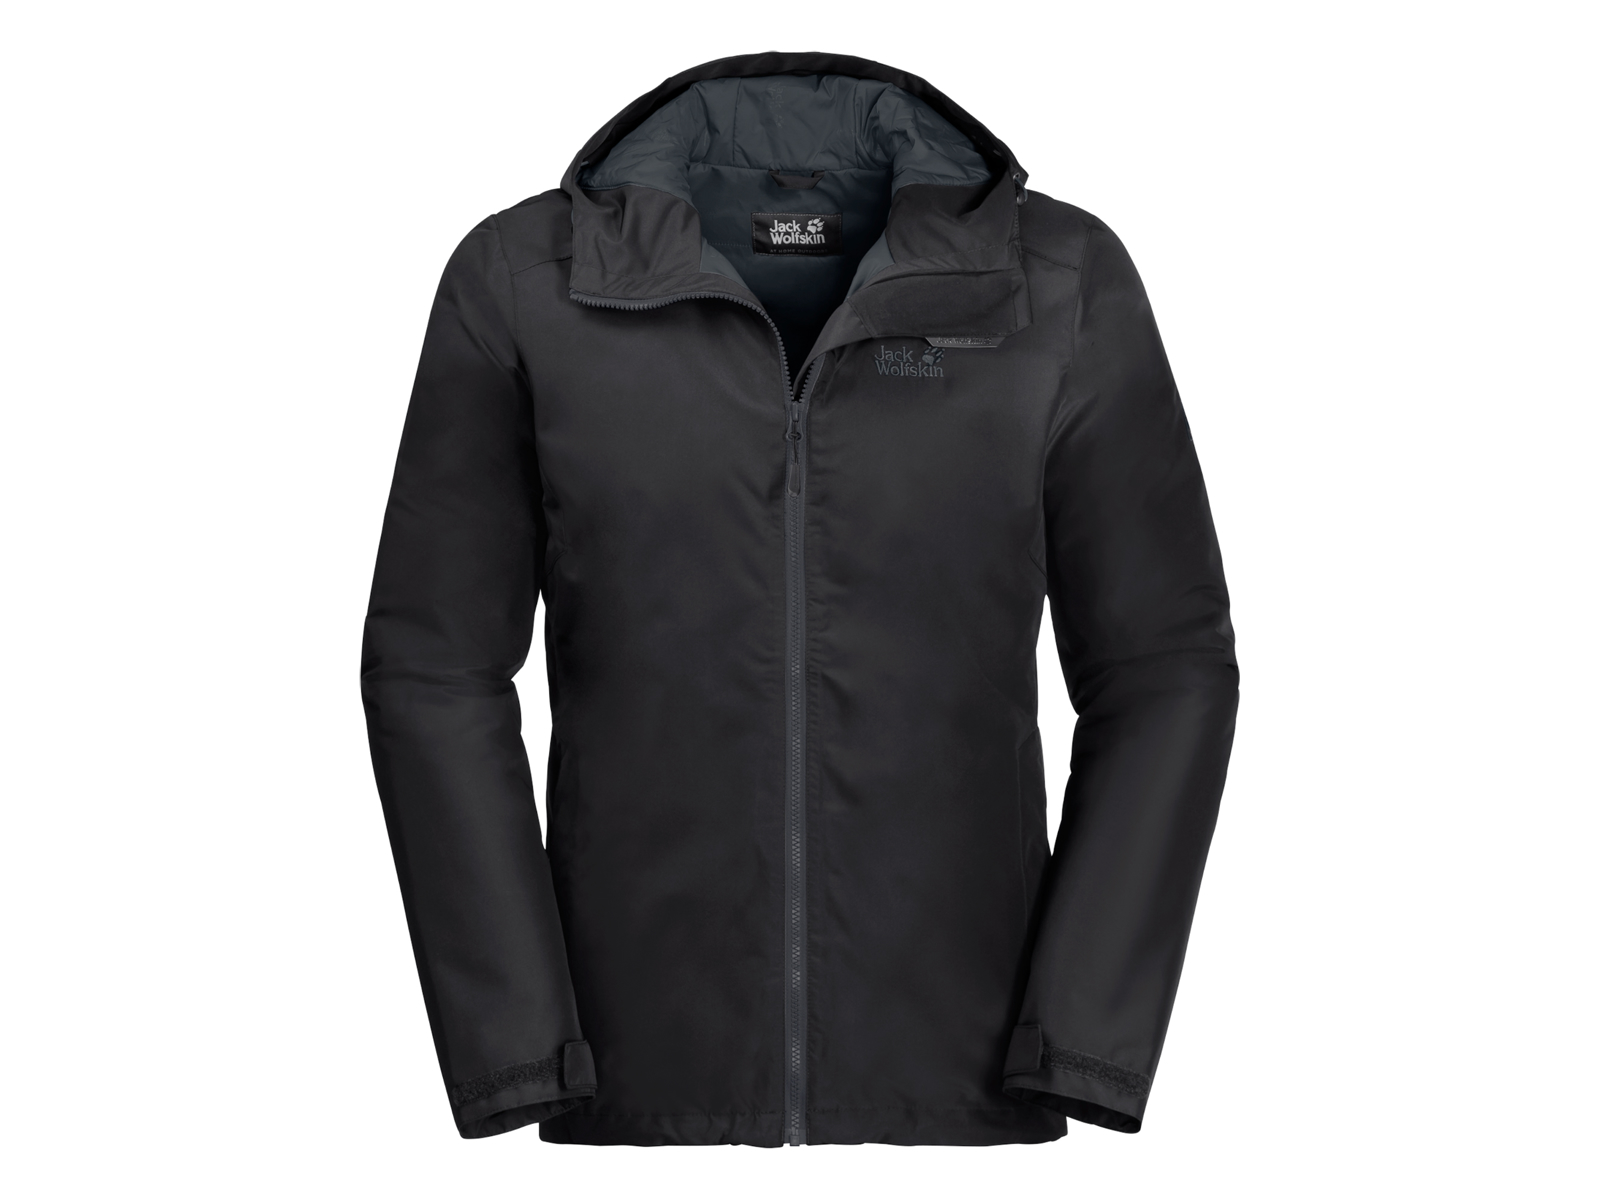 Jack Wolfskin Chilly Morning Men Vandtæt herrejakke m. for Sort (DKK 999,00)